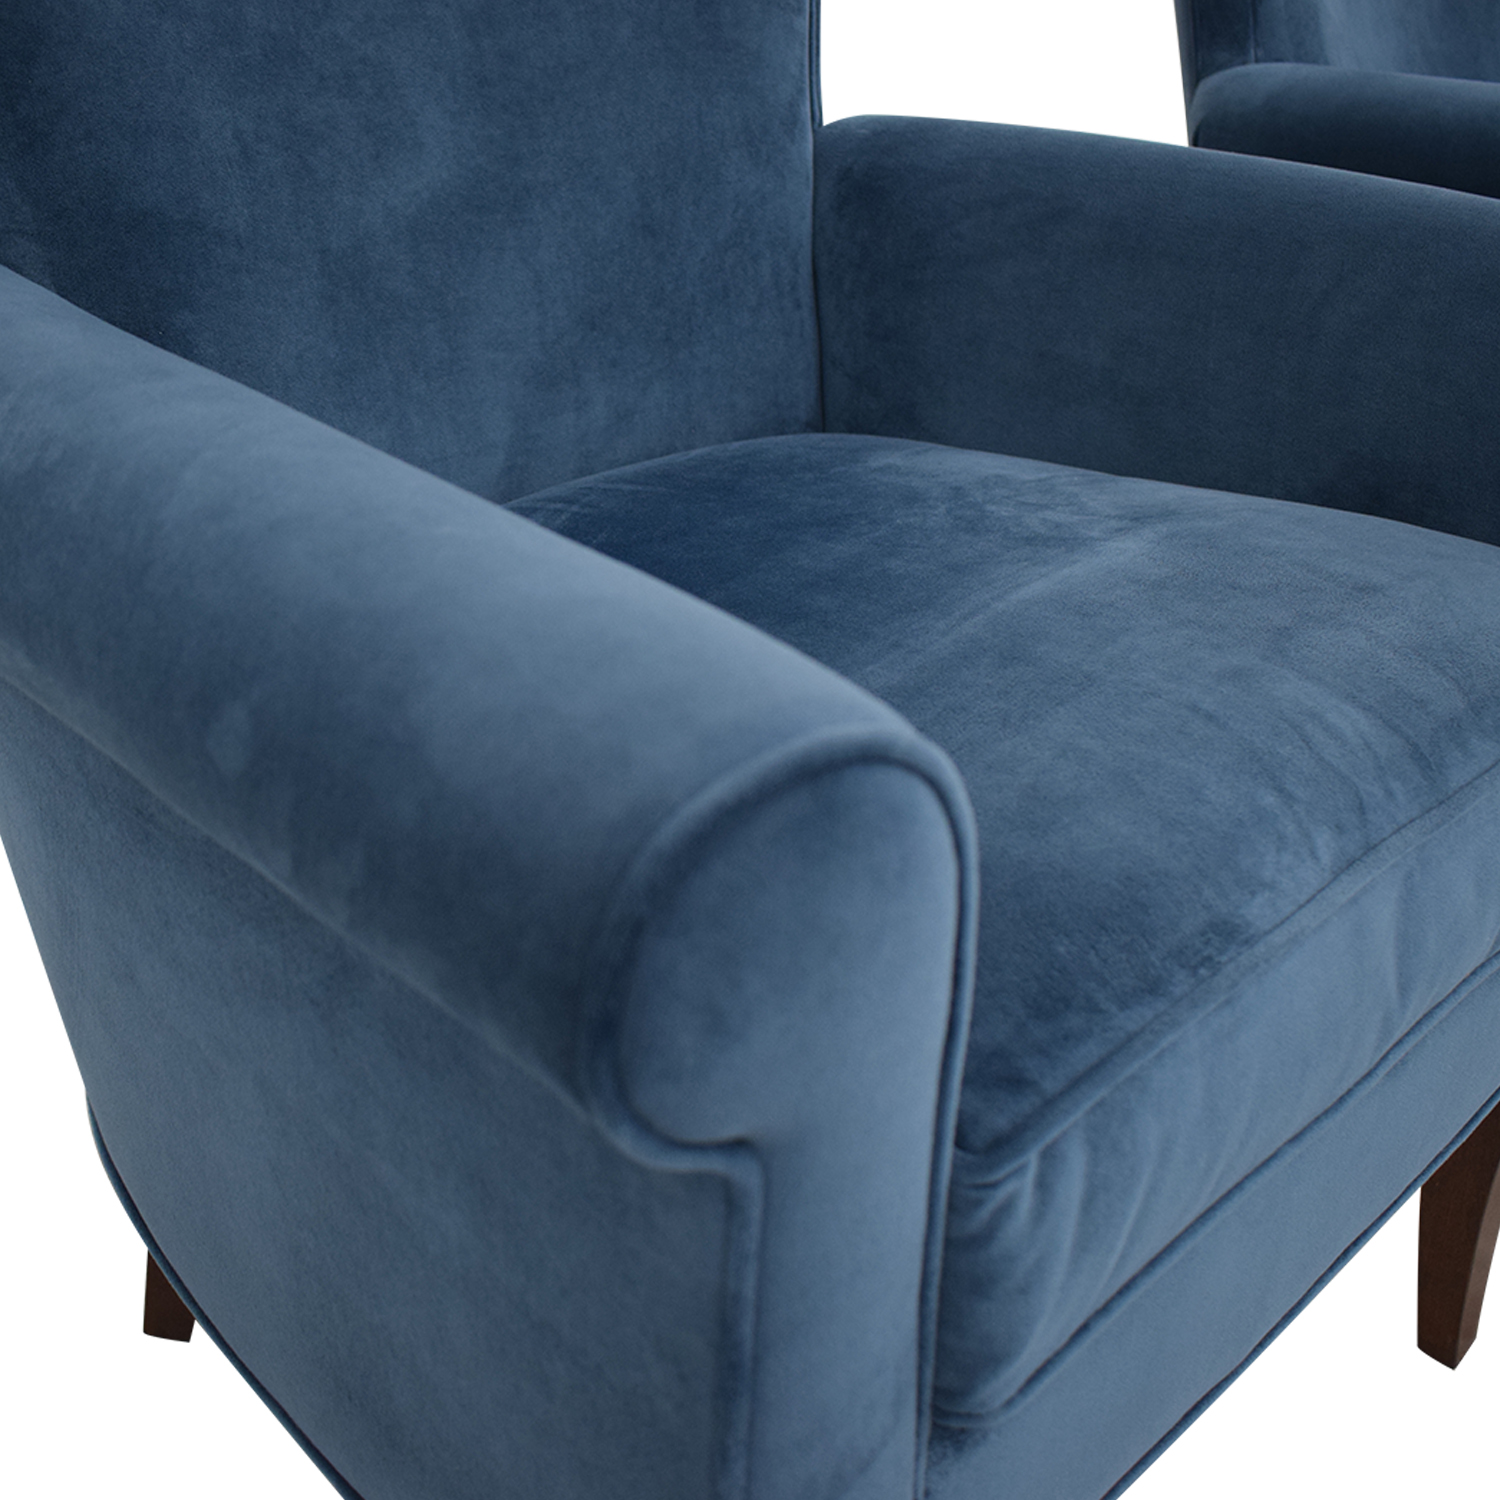 Stickley Furniture Stickley Furniture Sonoma Blue Accent Arm Chairs coupon